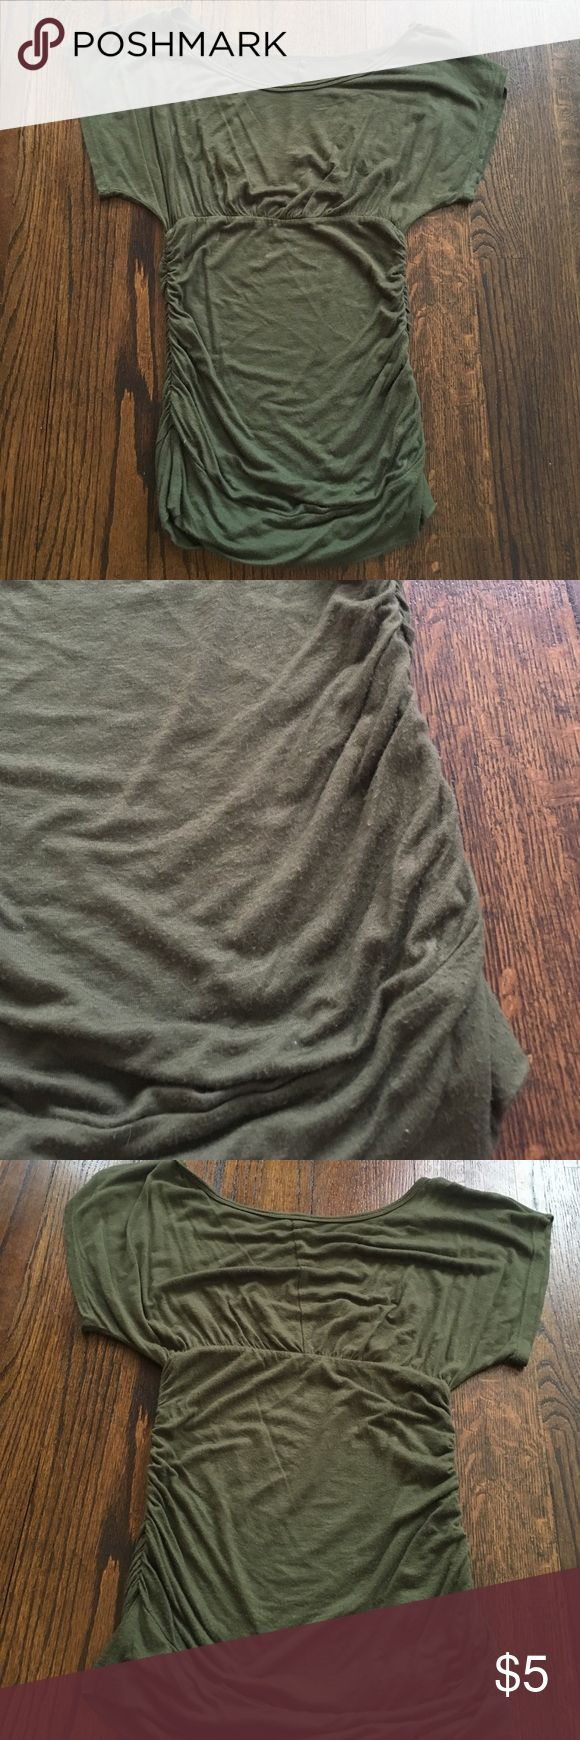 Olive green batwing top Olive green top with rouched sides and batwing sleeves. Some piling from wear. No tags but fits like an XS Tops